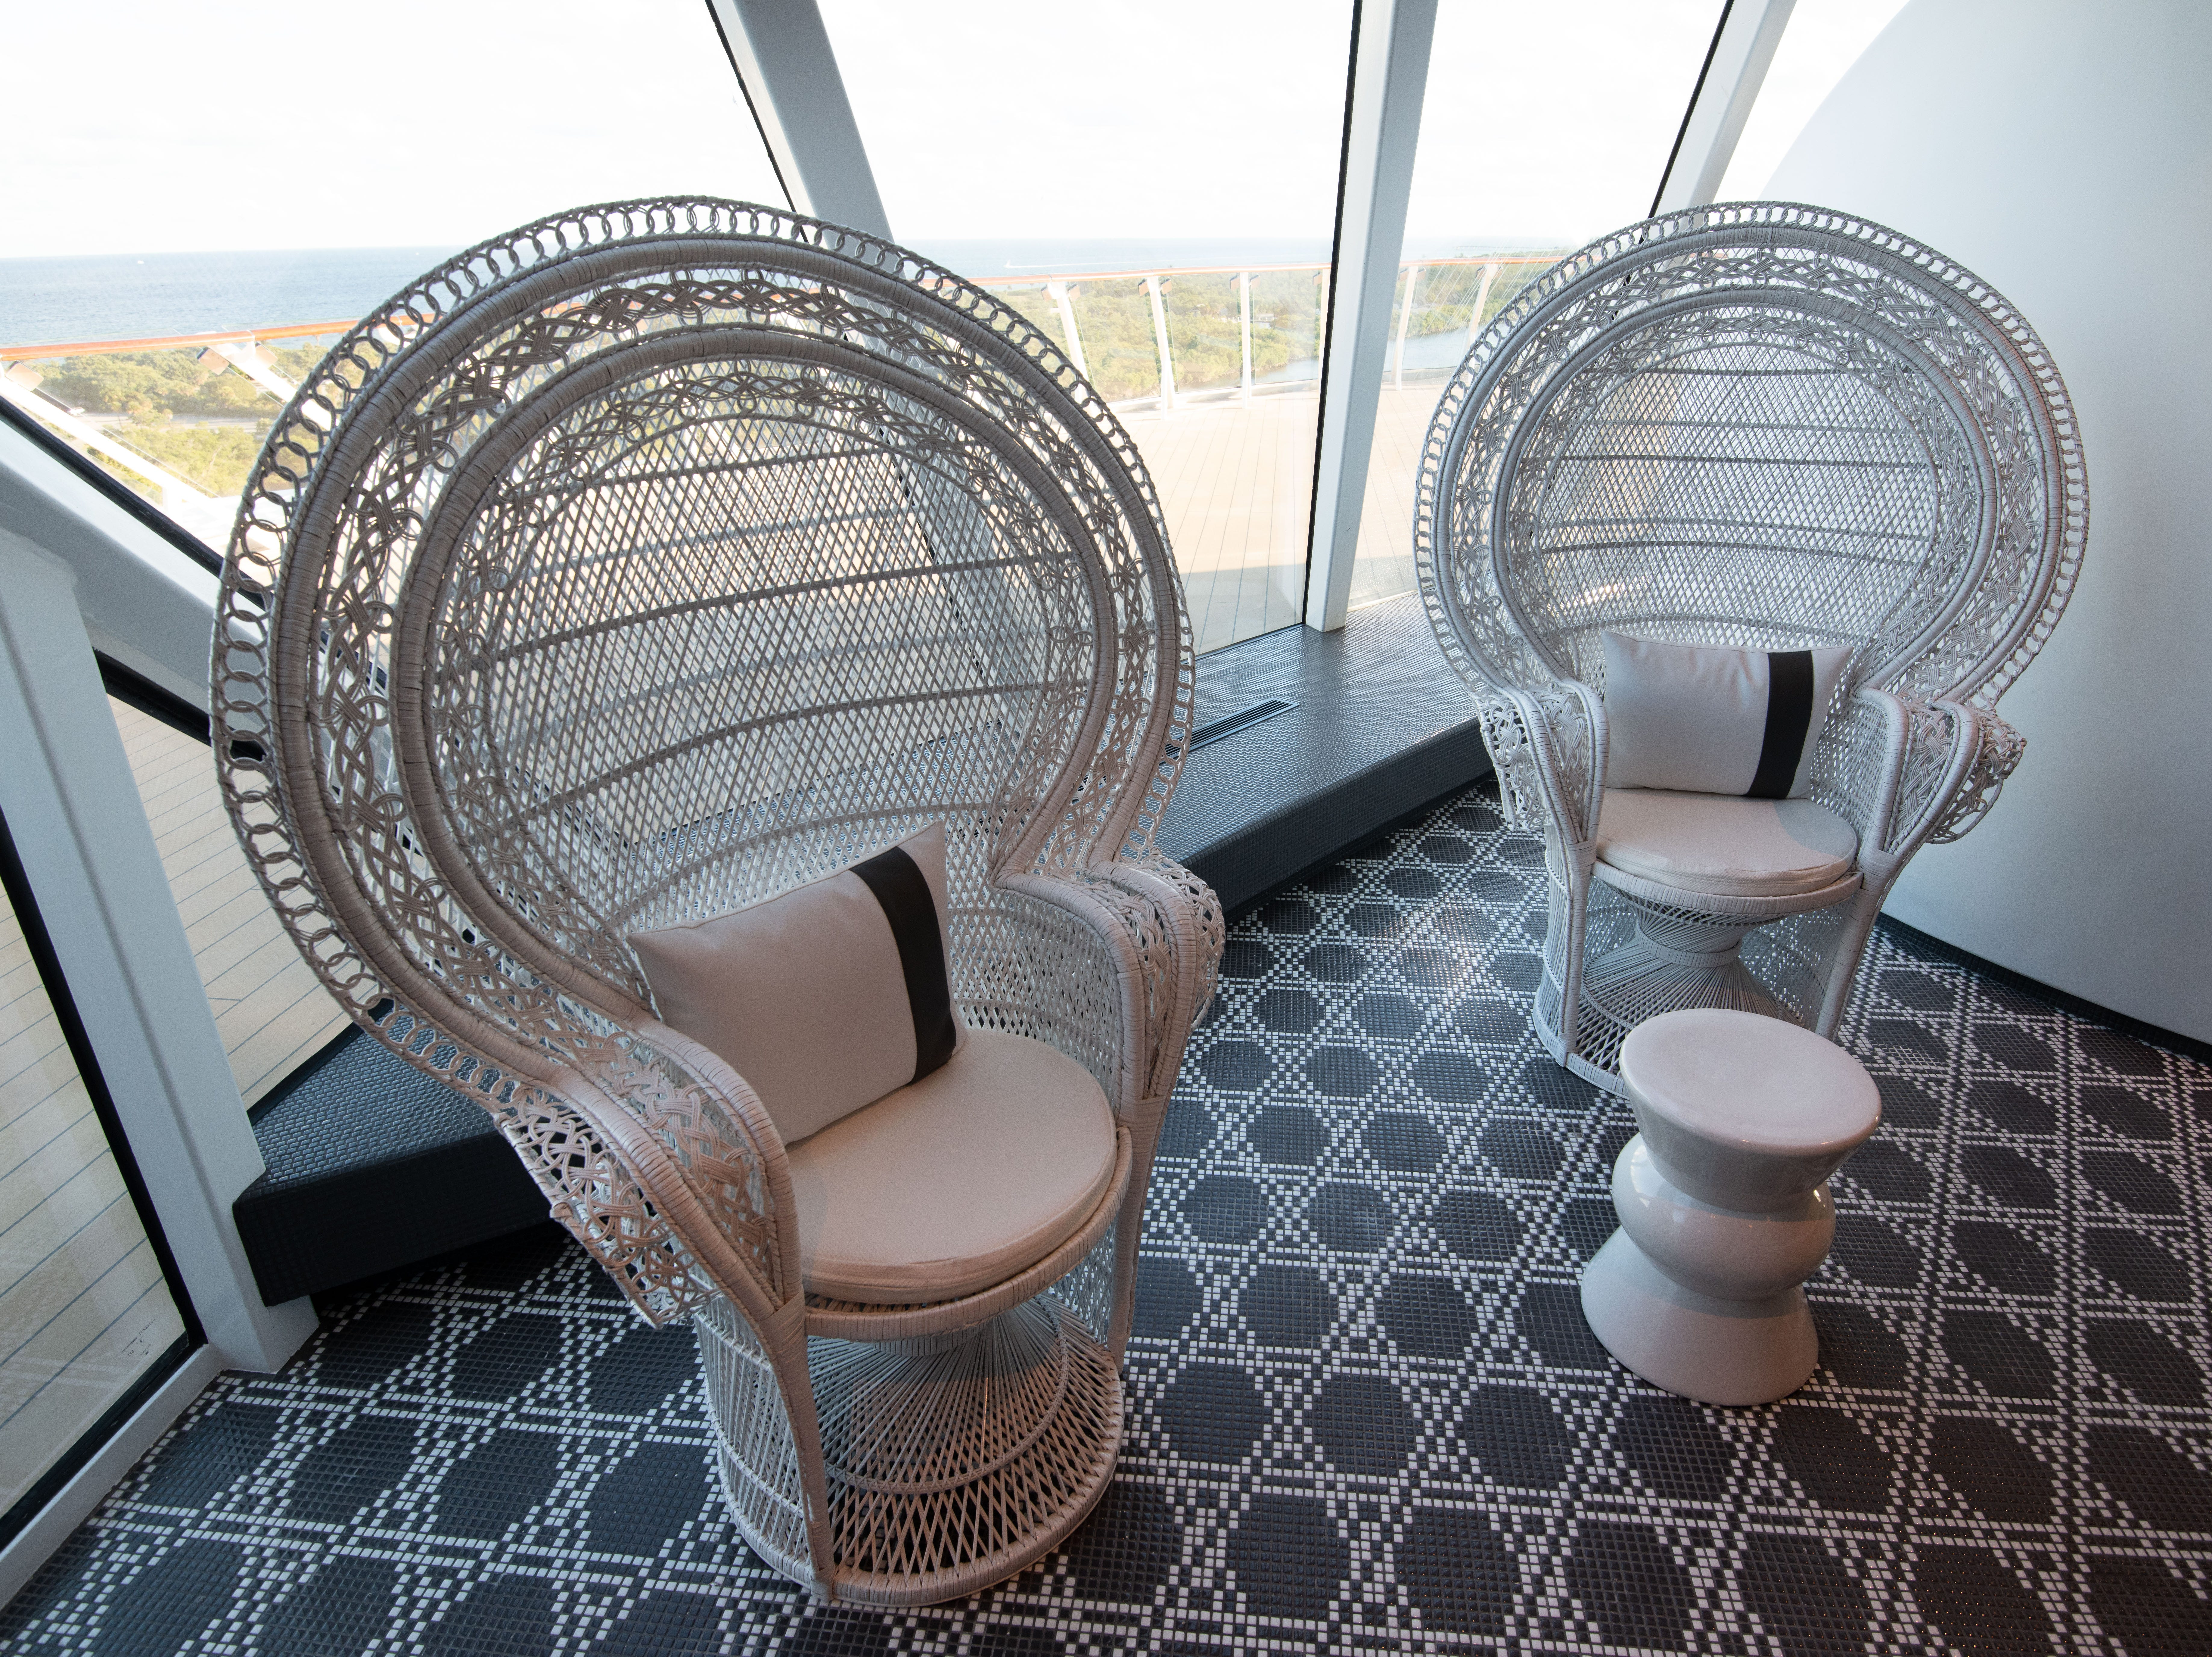 Stylish wicker chairs await passengers at the Celebrity Edge spa's thermal suite complex.